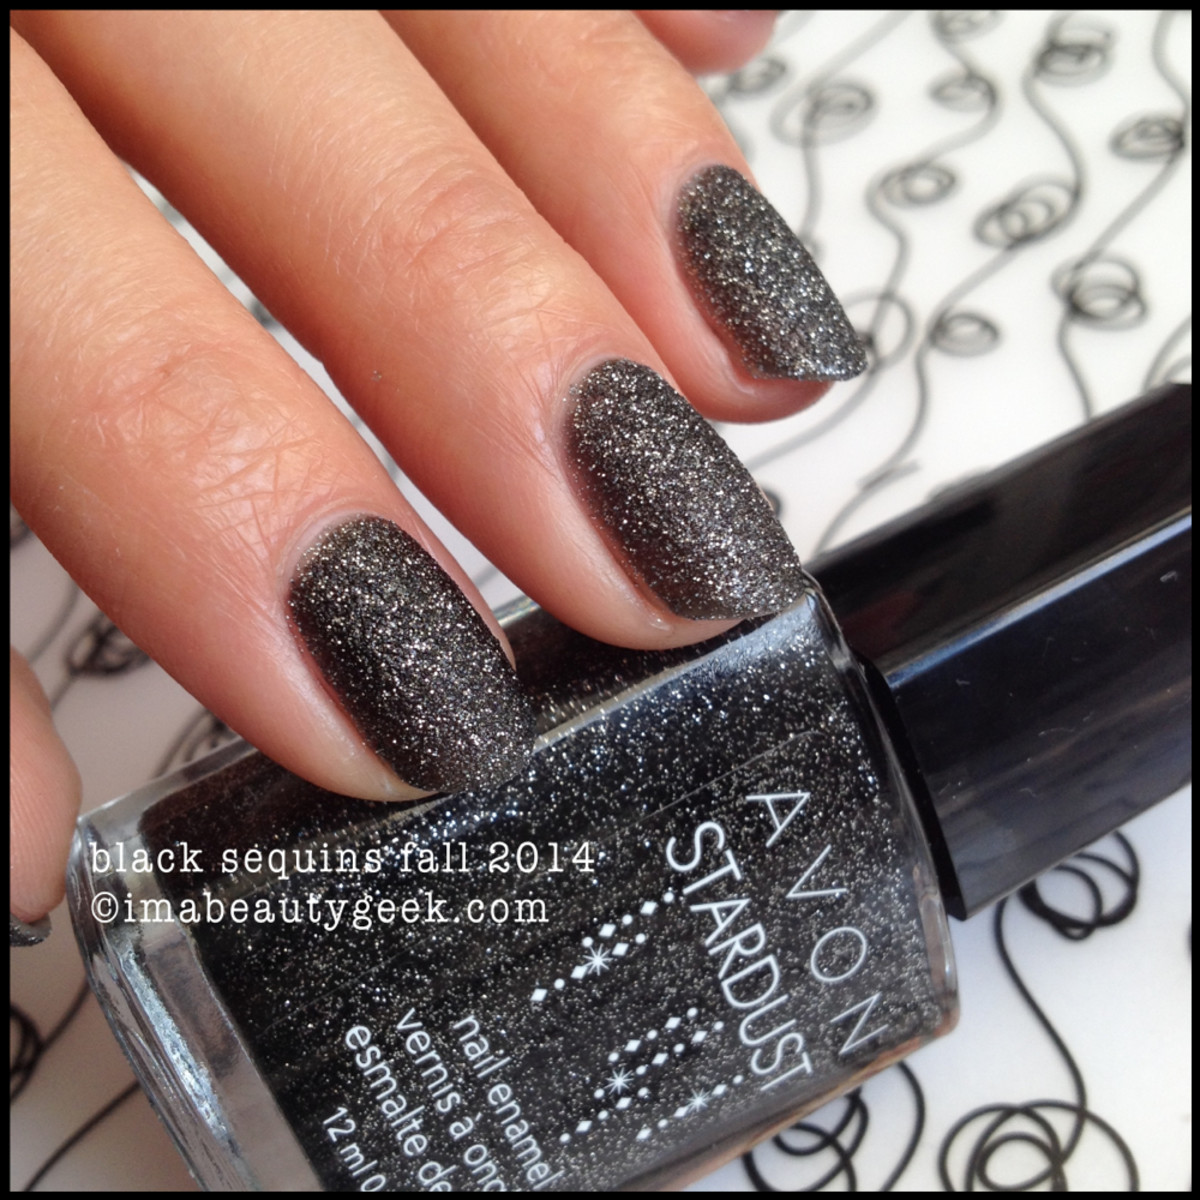 Avon polish Black Sequins Stardust Fall 2014